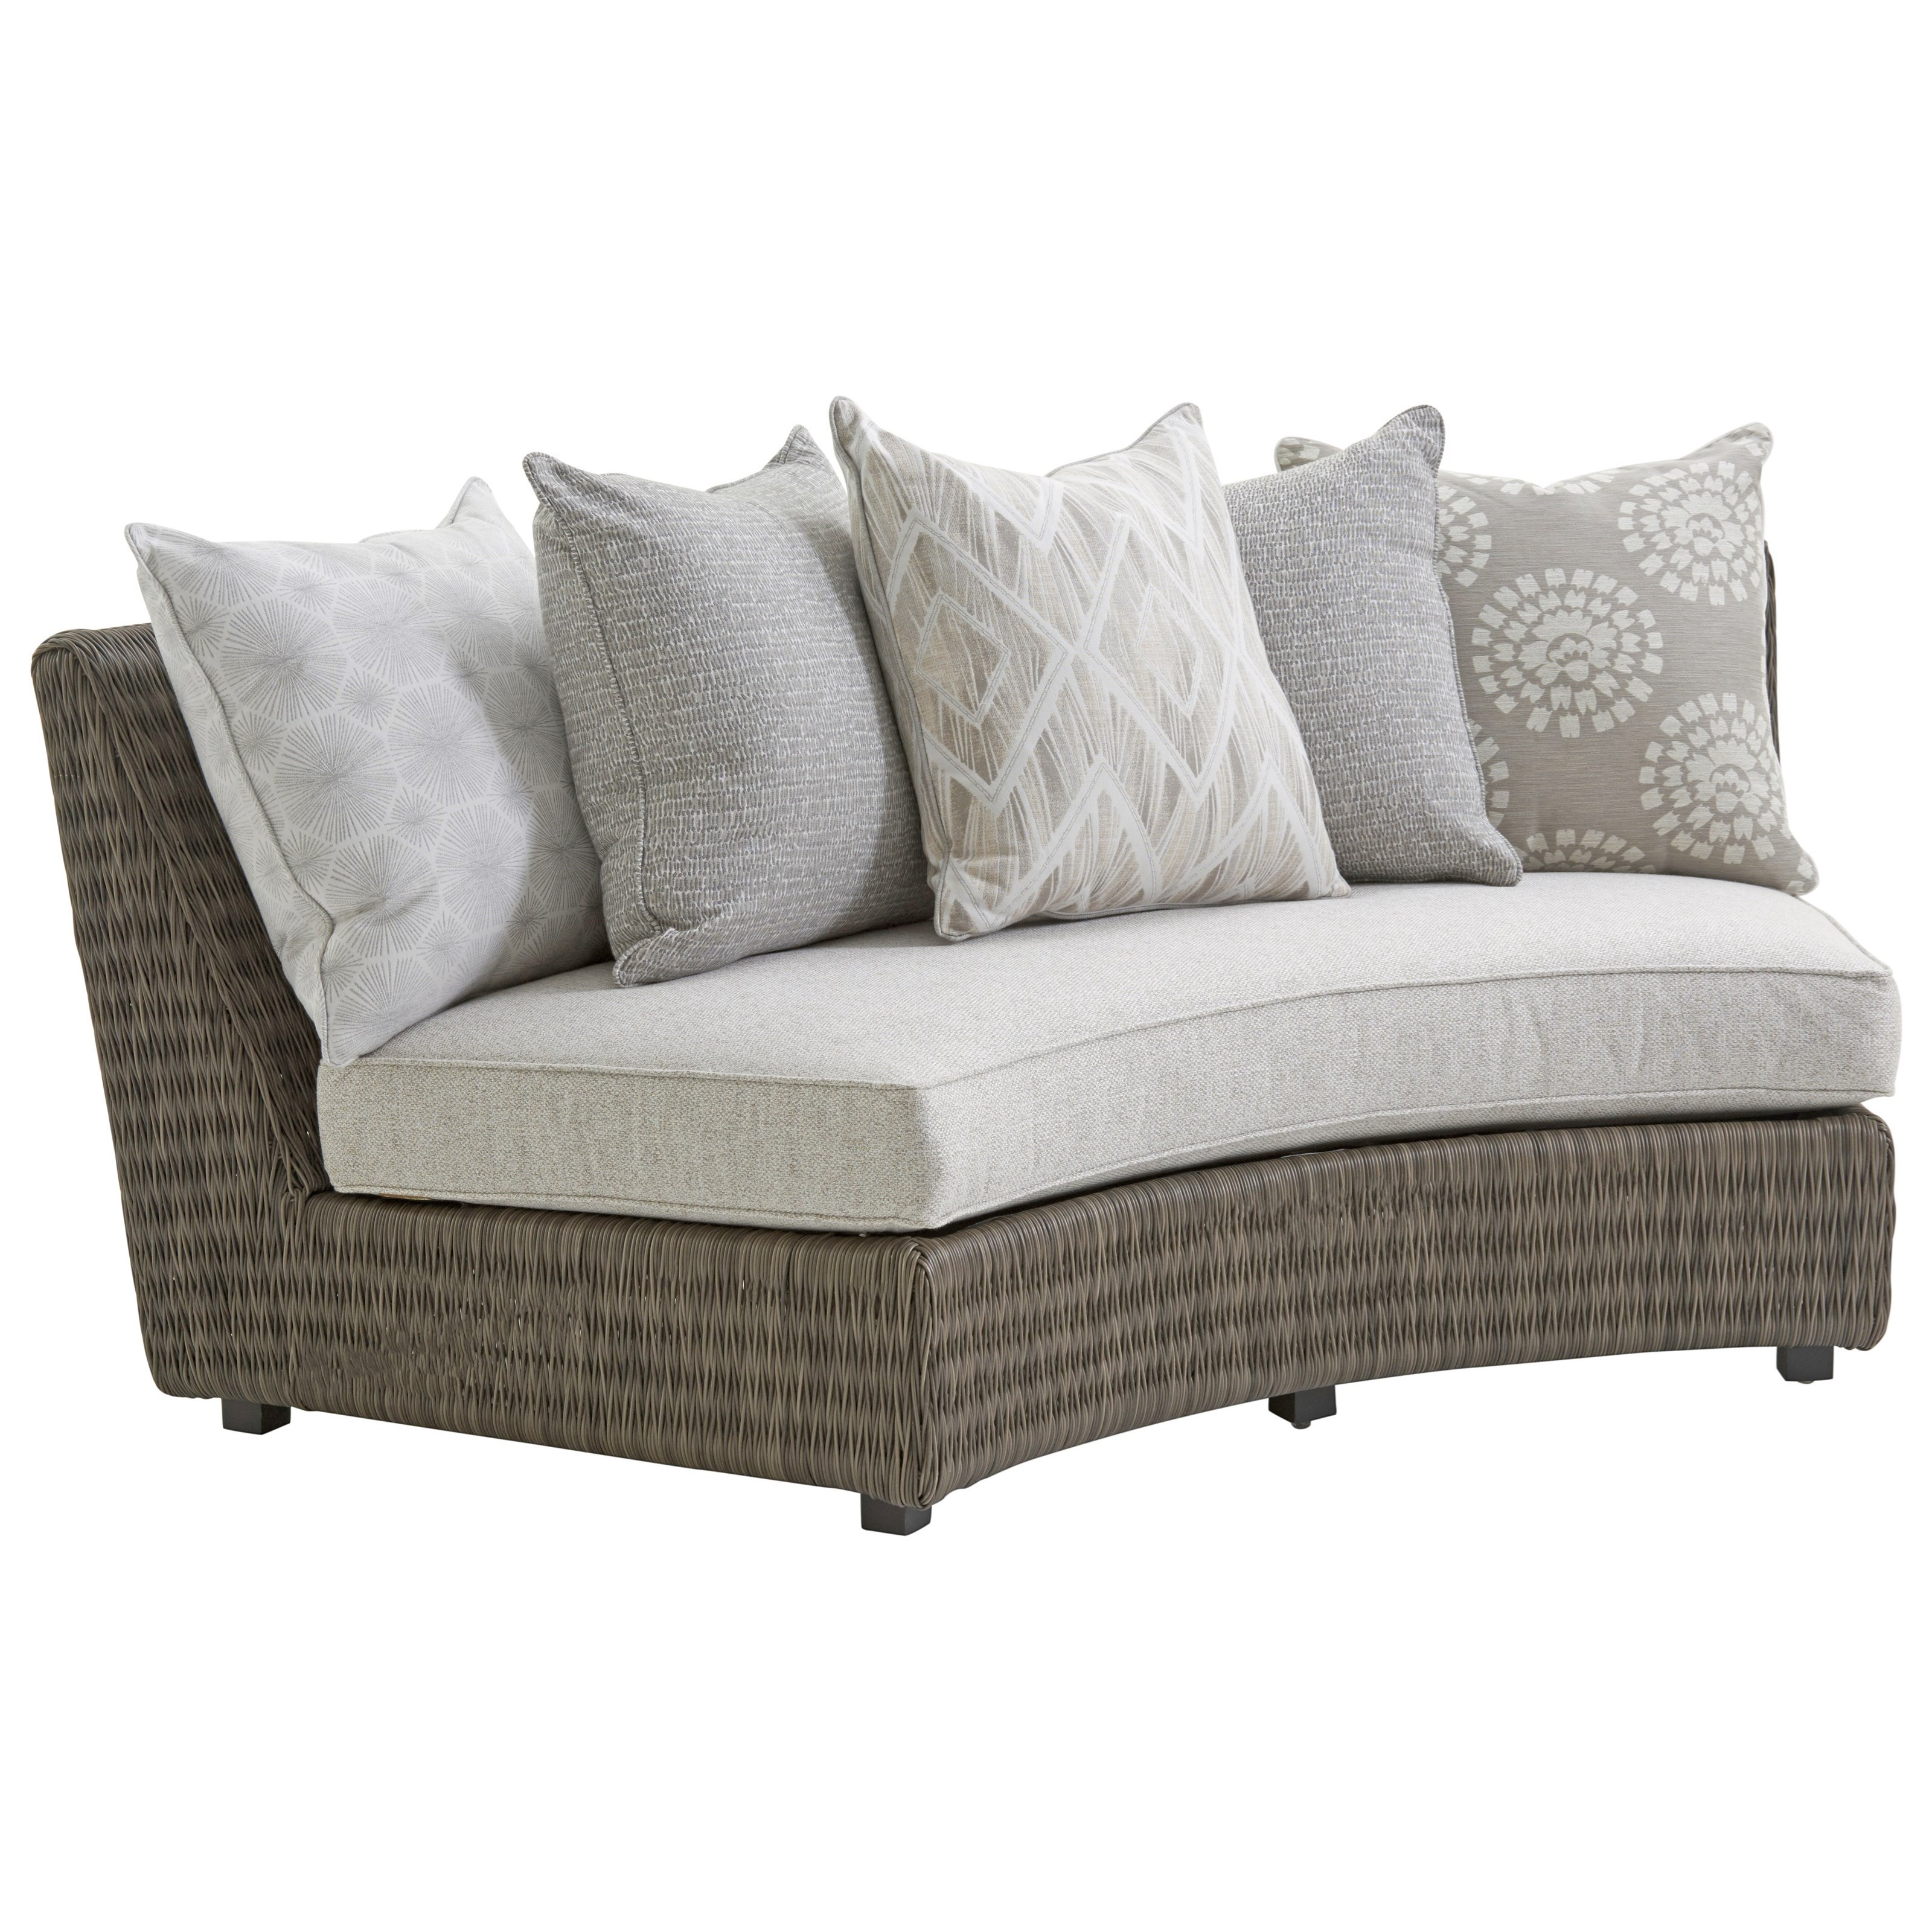 Cypress Point Ocean Terrace Outdoor Armless Sofa w/ Scatterback Cushions by Tommy Bahama Outdoor Living at Baer's Furniture